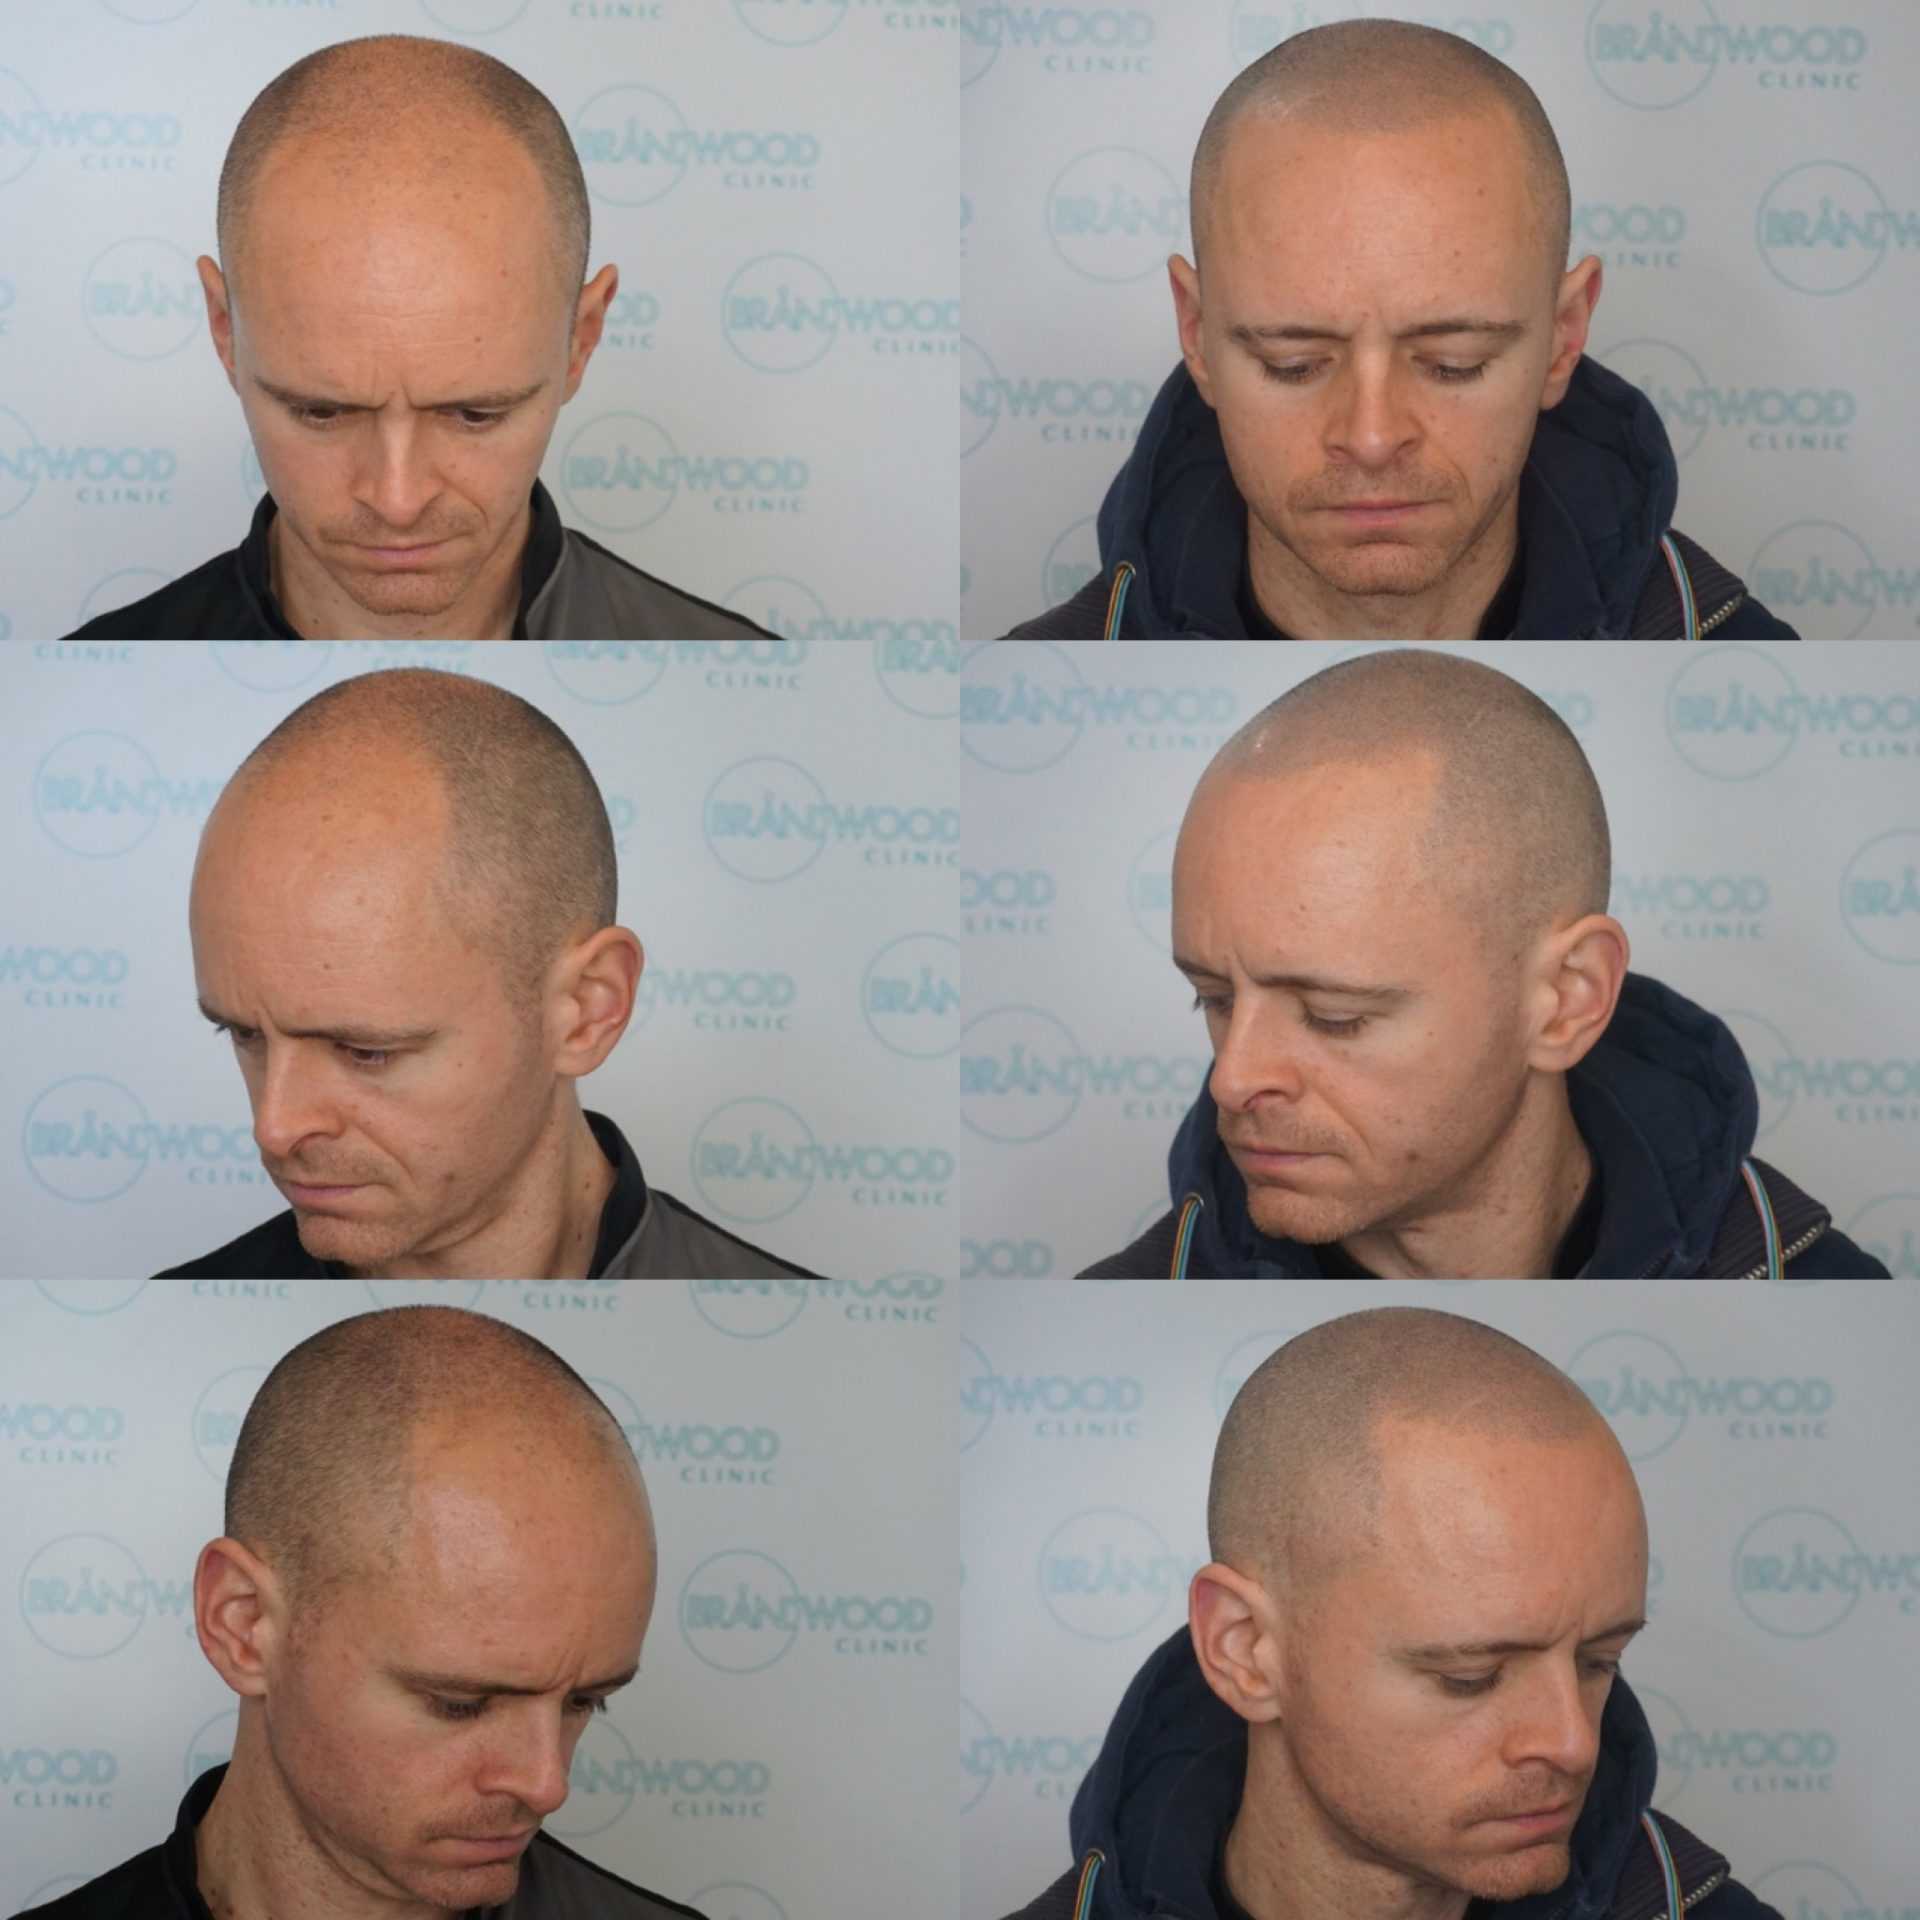 baldness treated with SMP